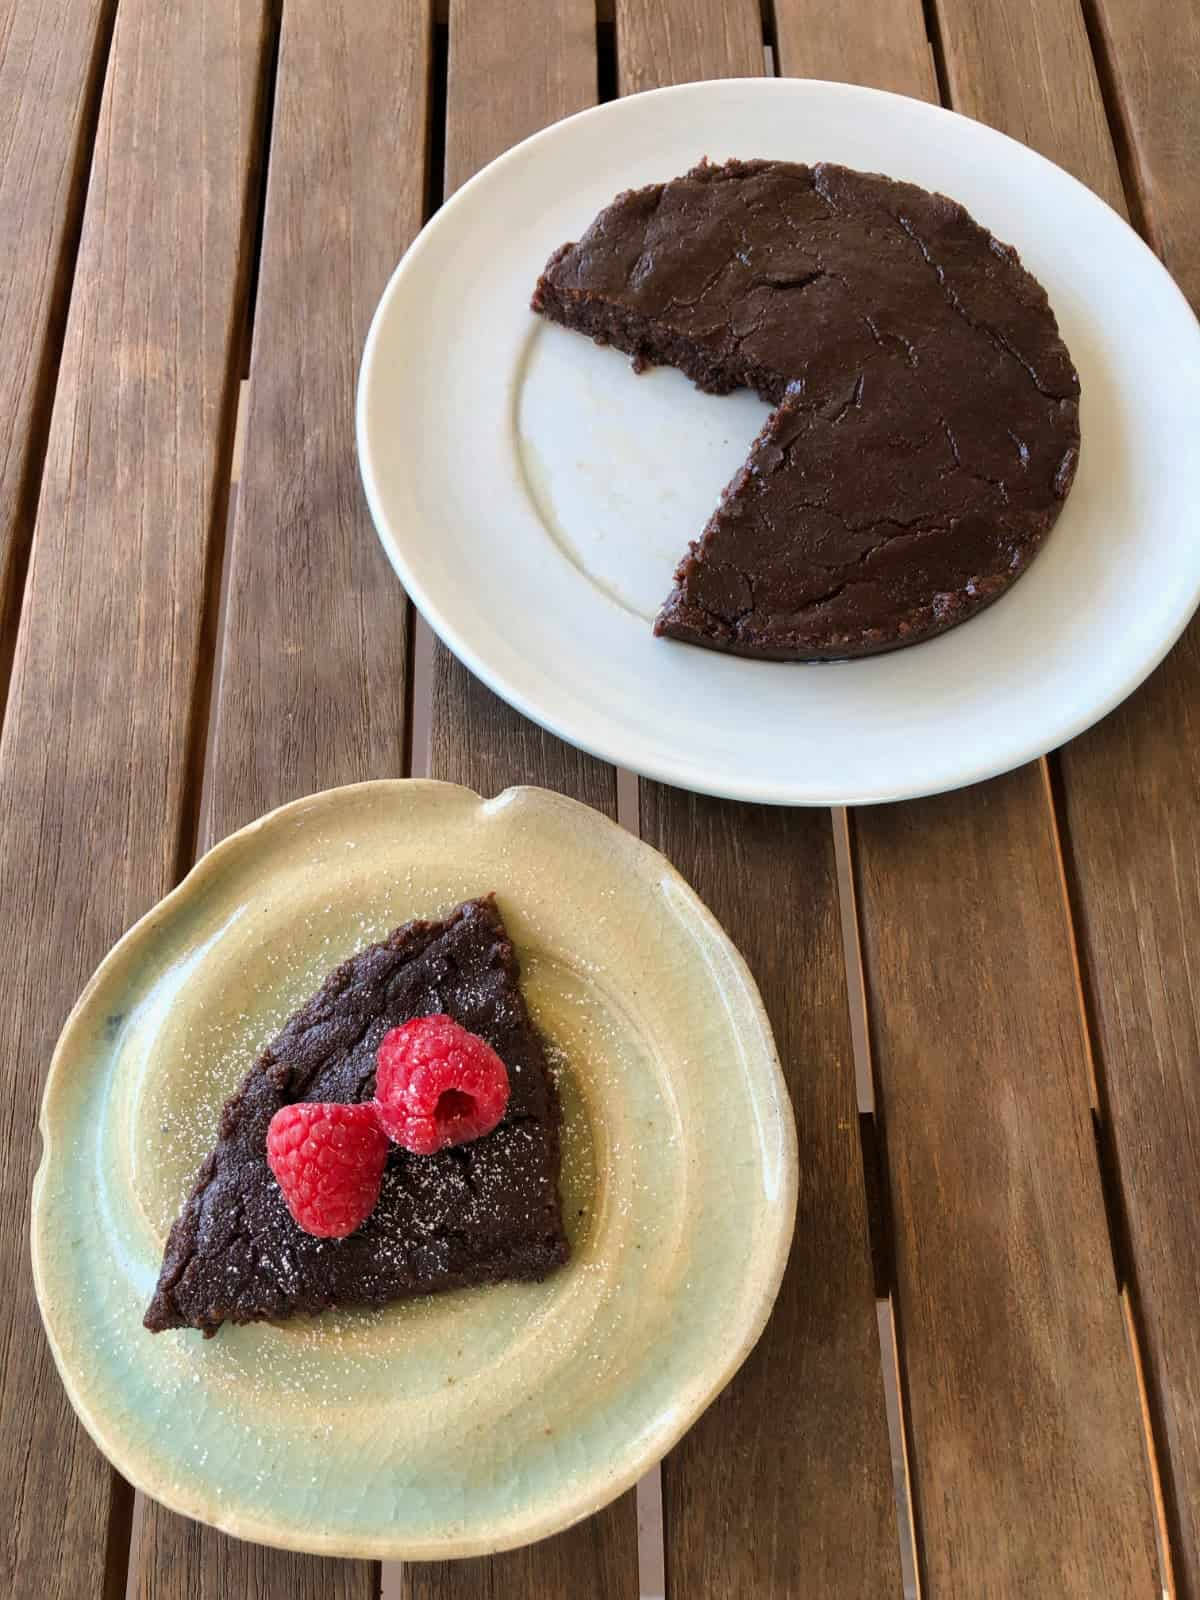 Easy 3-ingredient Nutella Fudge cake on plate near piece of cake topped with fresh raspberries.